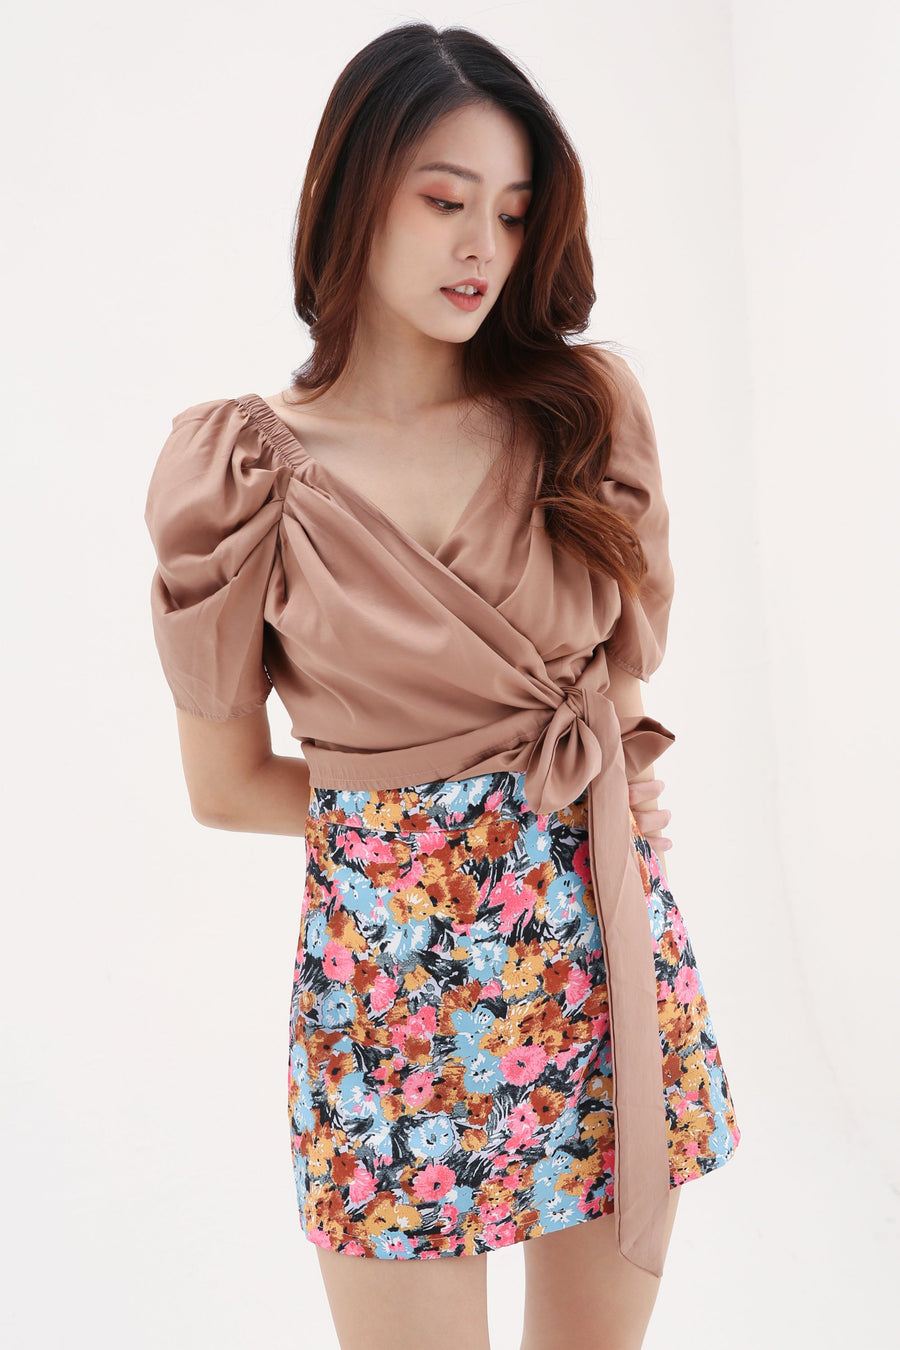 Flower Skirt 8166 Bottoms